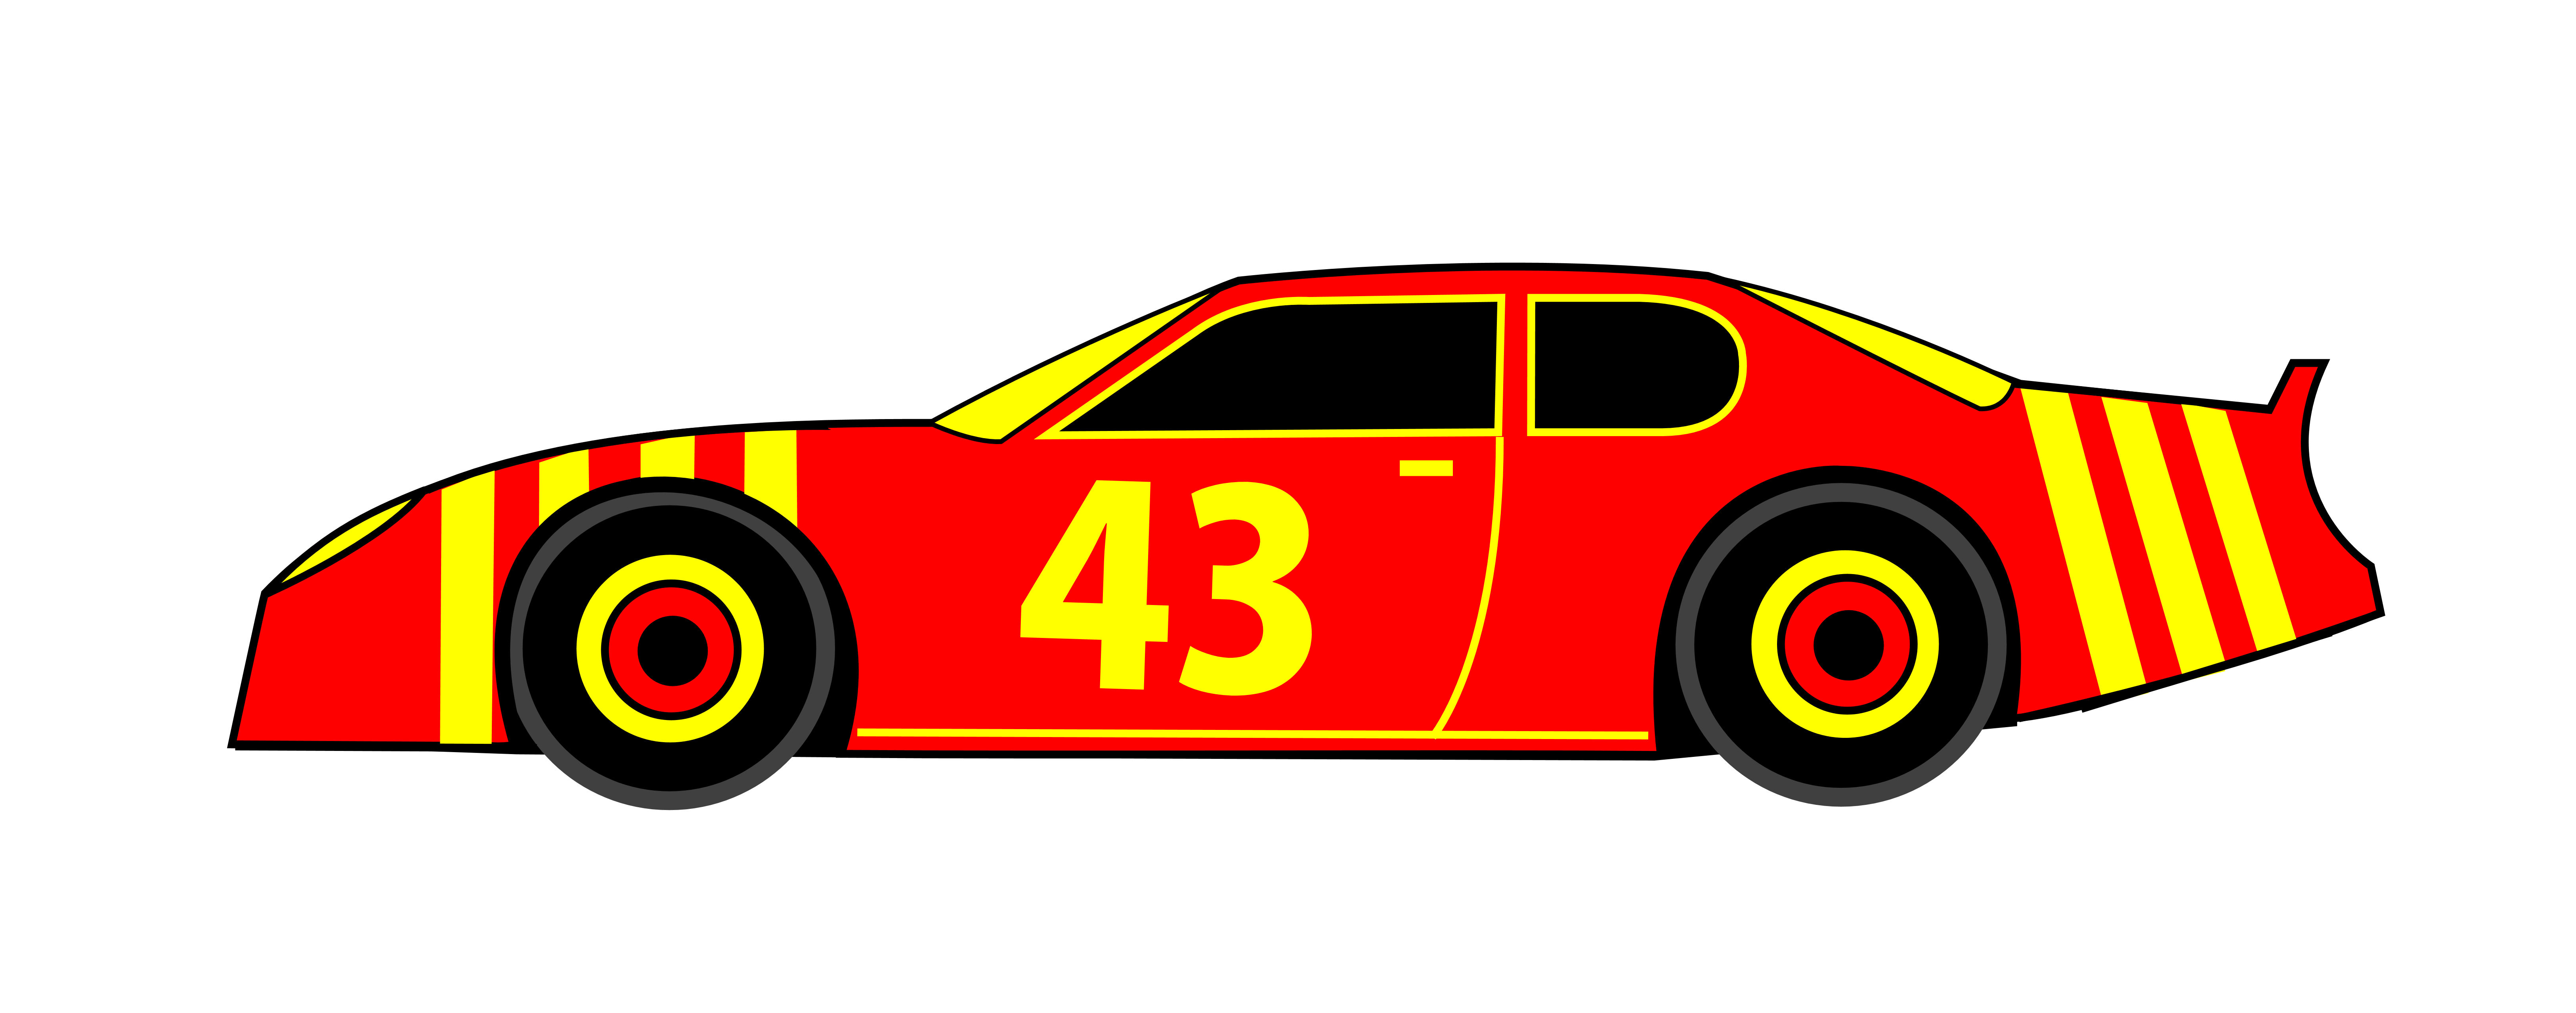 NASCAR Clipart | Free Download .-NASCAR Clipart | Free Download .-3